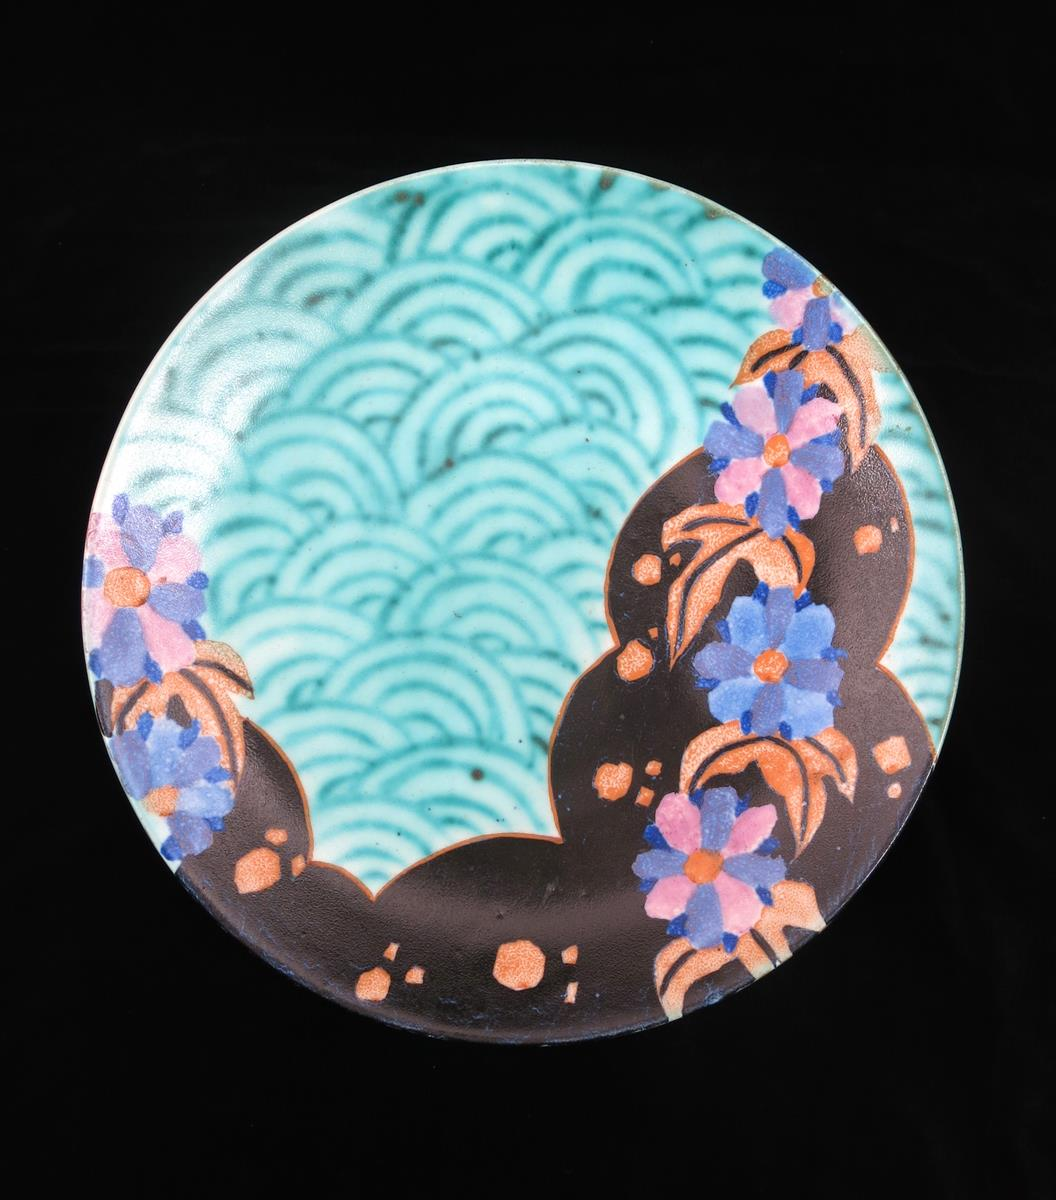 'Inspiration Clouvre' a Clarice Cliff Bizarre wall plaque, painted in colours on a turquoise ground, - Image 2 of 2